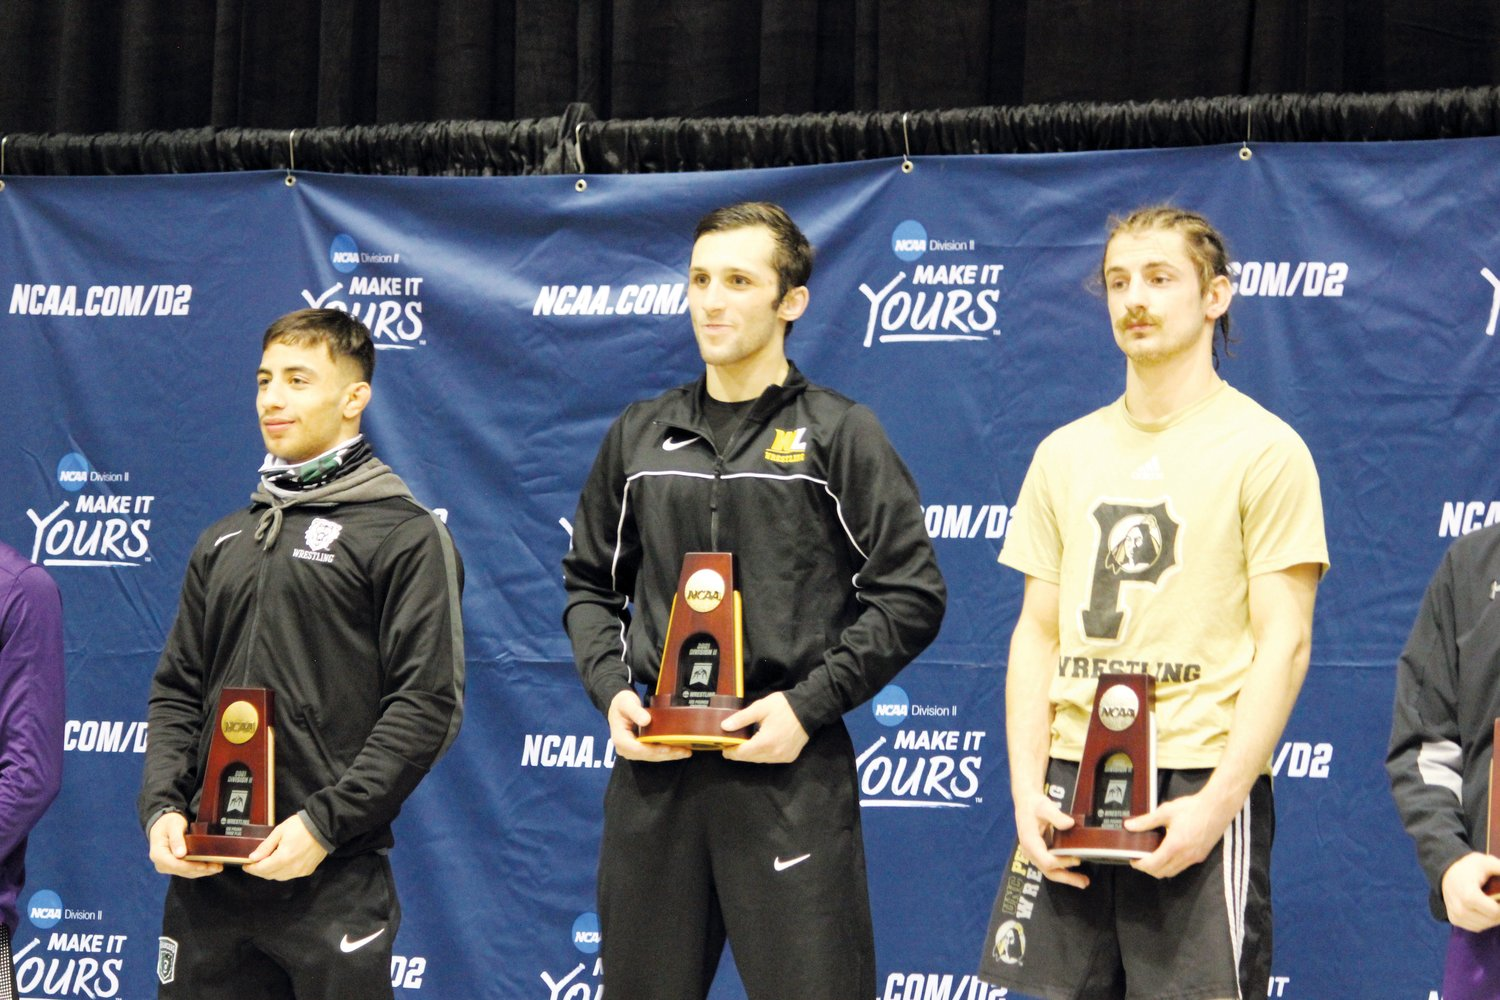 UNC Pembroke senior, and former Chatham Central wrestler, Nick Daggett (right) holds his runner-up trophy at the podium during the NCAA Division II Wrestling Championships in St. Louis over the weekend. Daggett lost by major decision, 12-2, to West Liberty's Cody Laya (center).